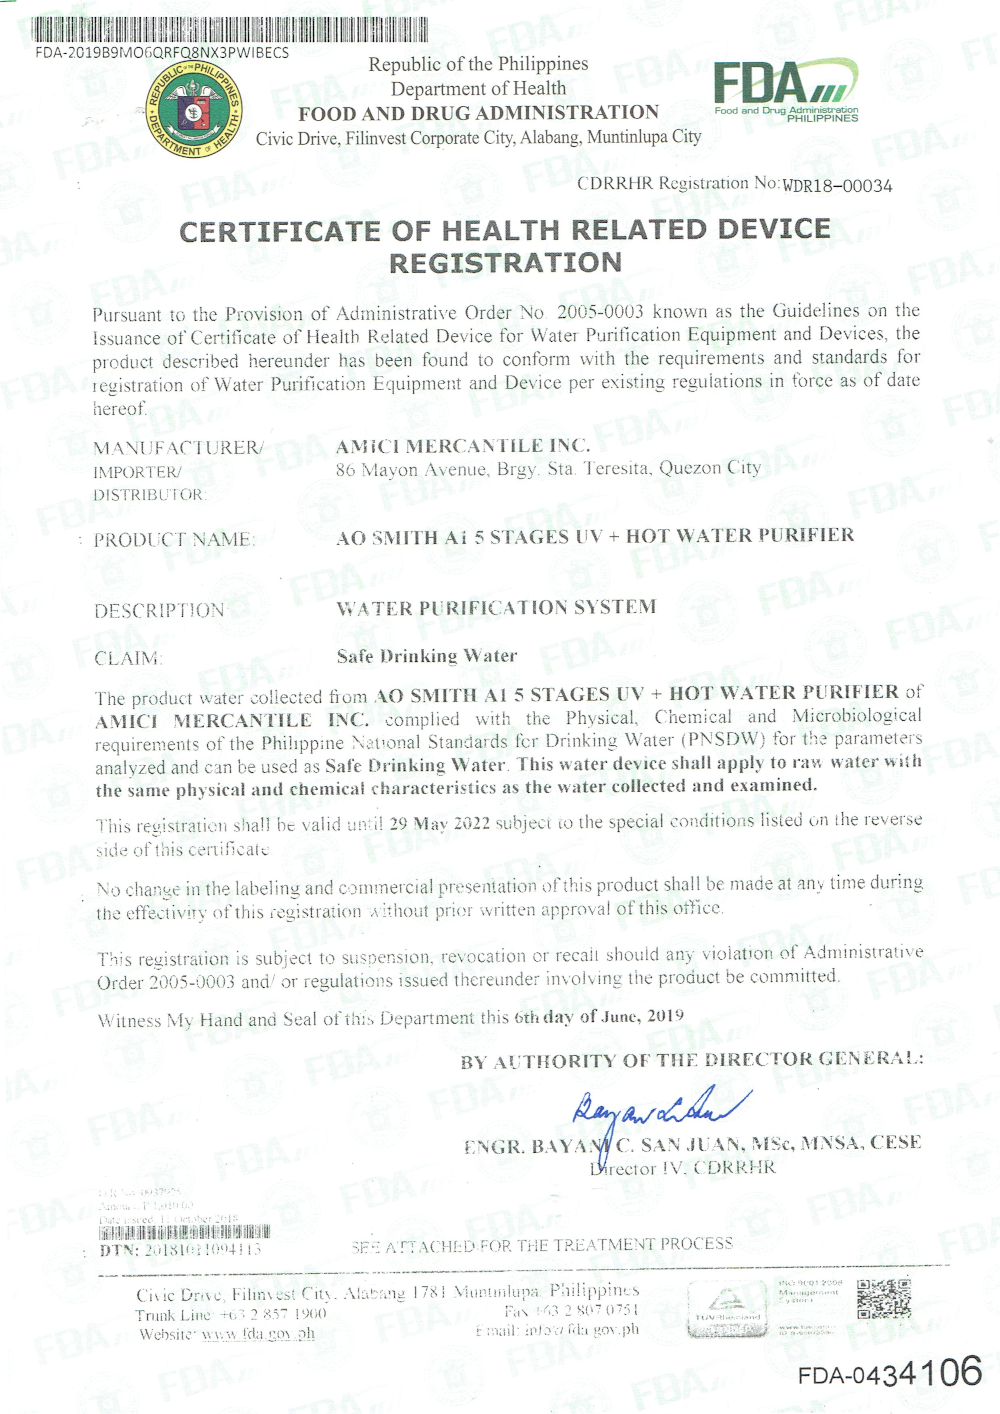 AO Smith A1 FDA Certificate page 1